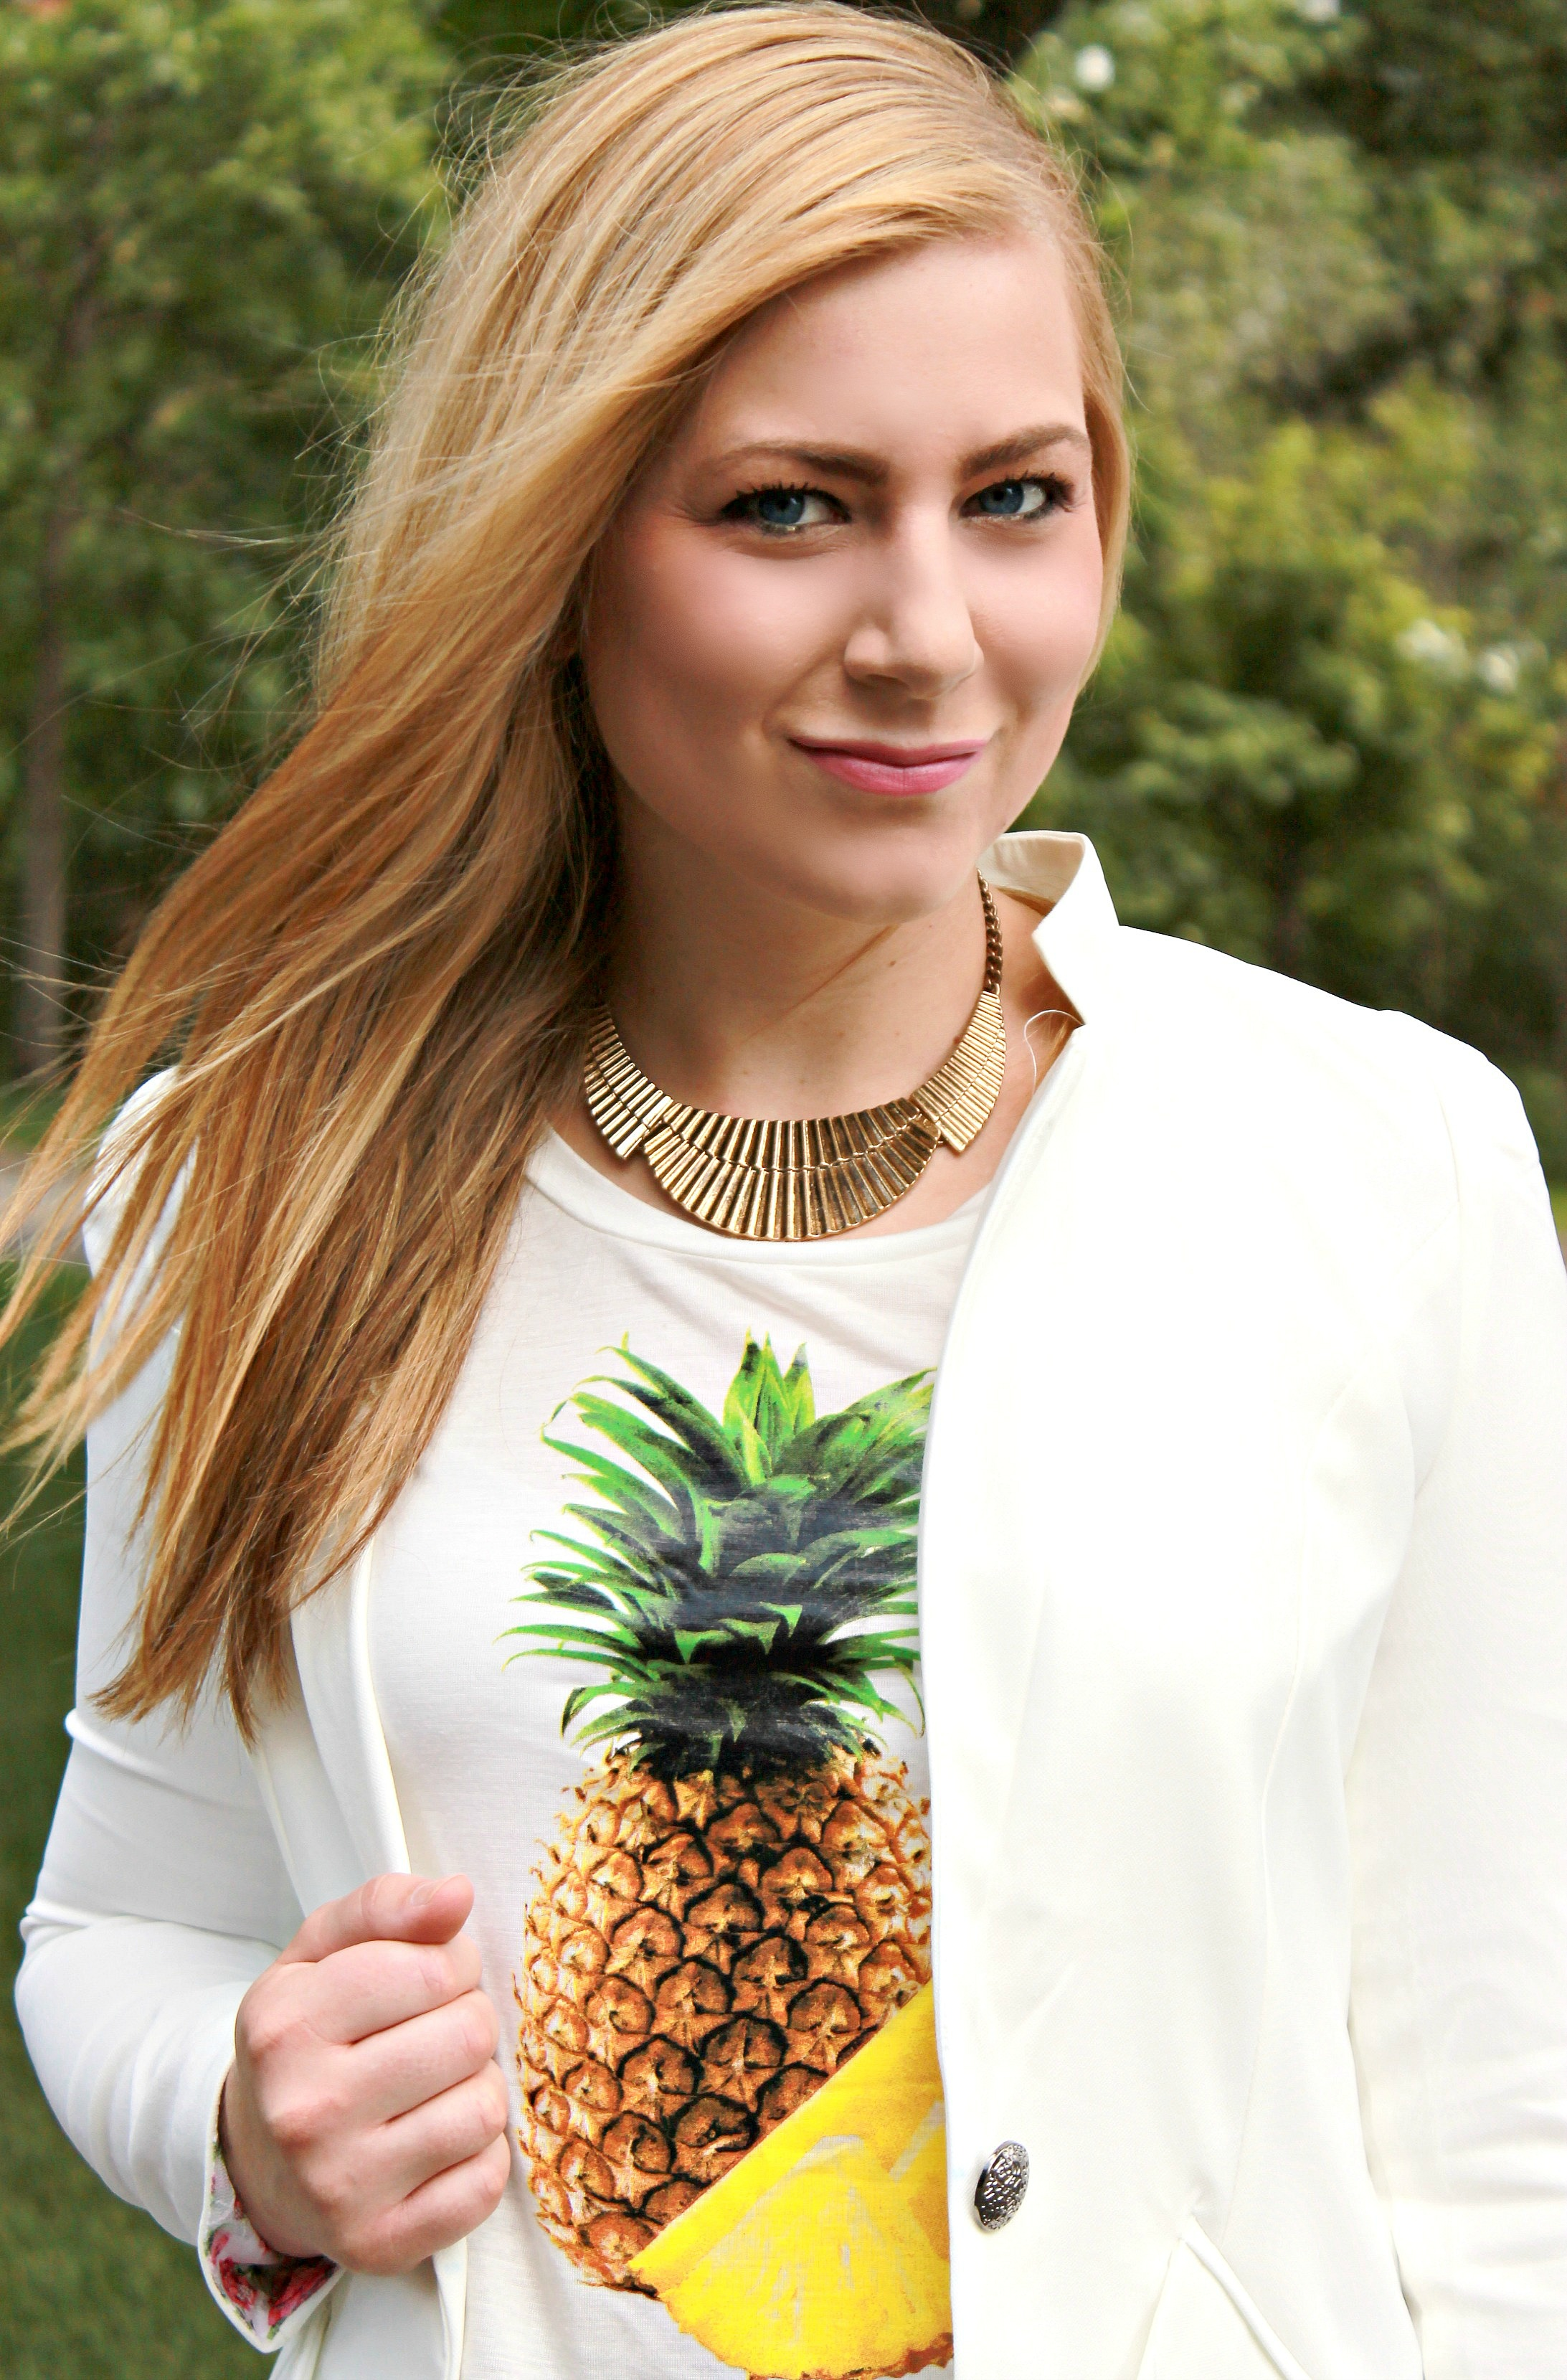 Pineapple top + white blazer